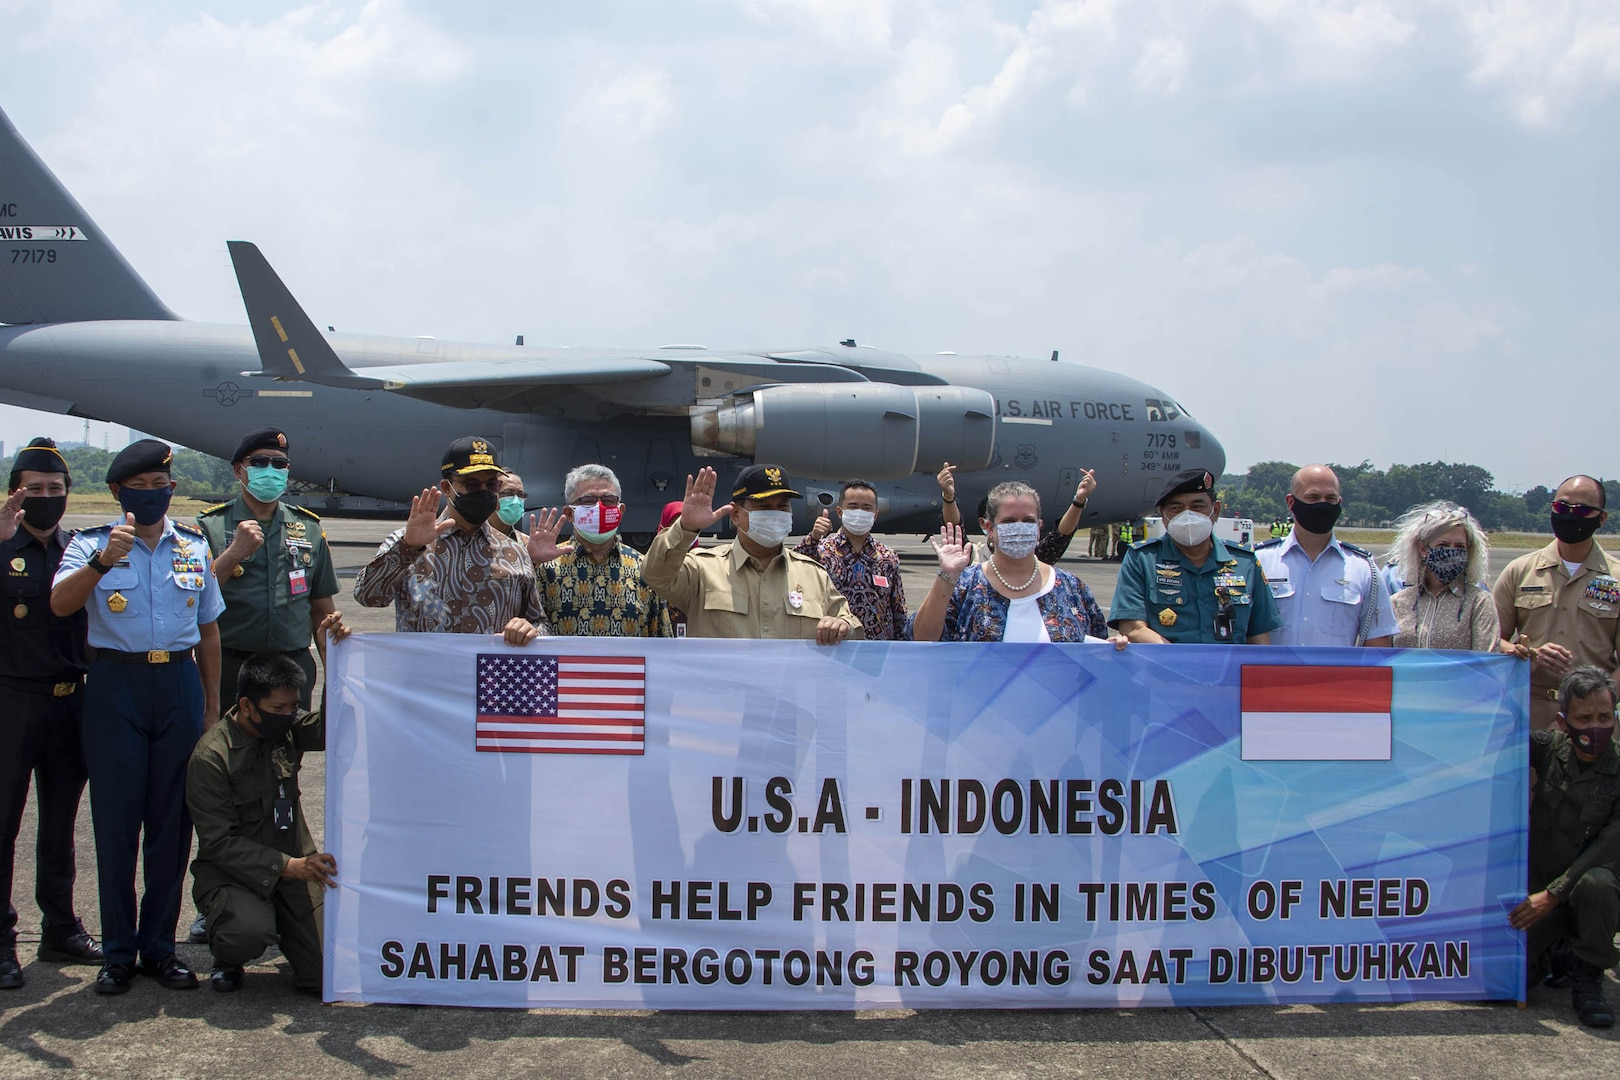 Defense Department Aids U.S. Delivery of Ventilators to Indonesia